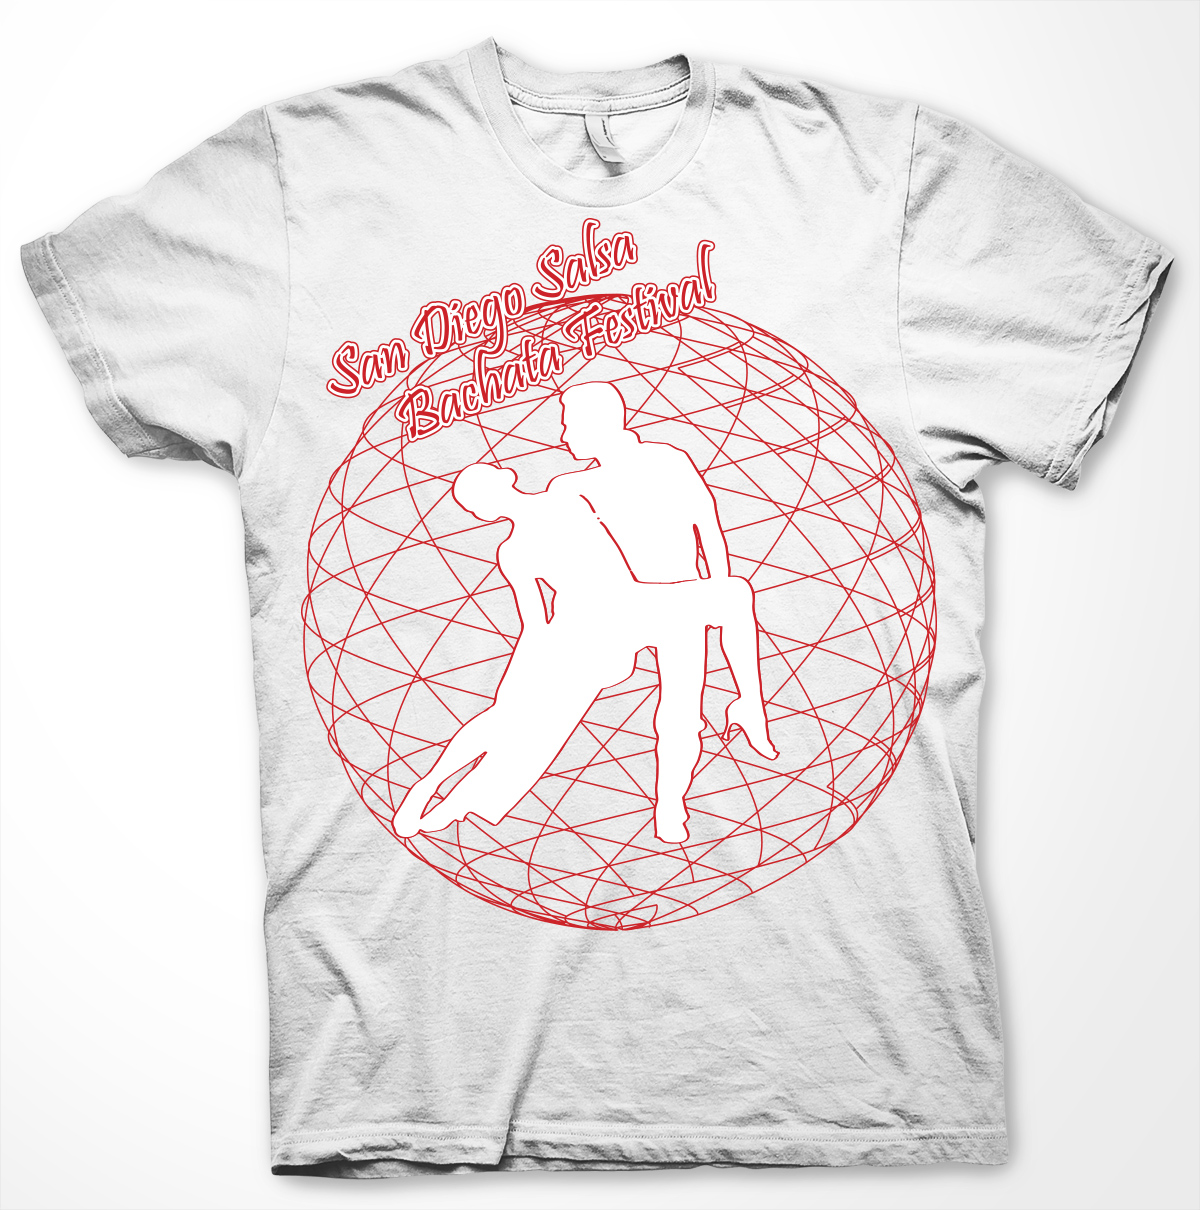 Festival t shirt design for a company by jaden ranen for T shirt design festival